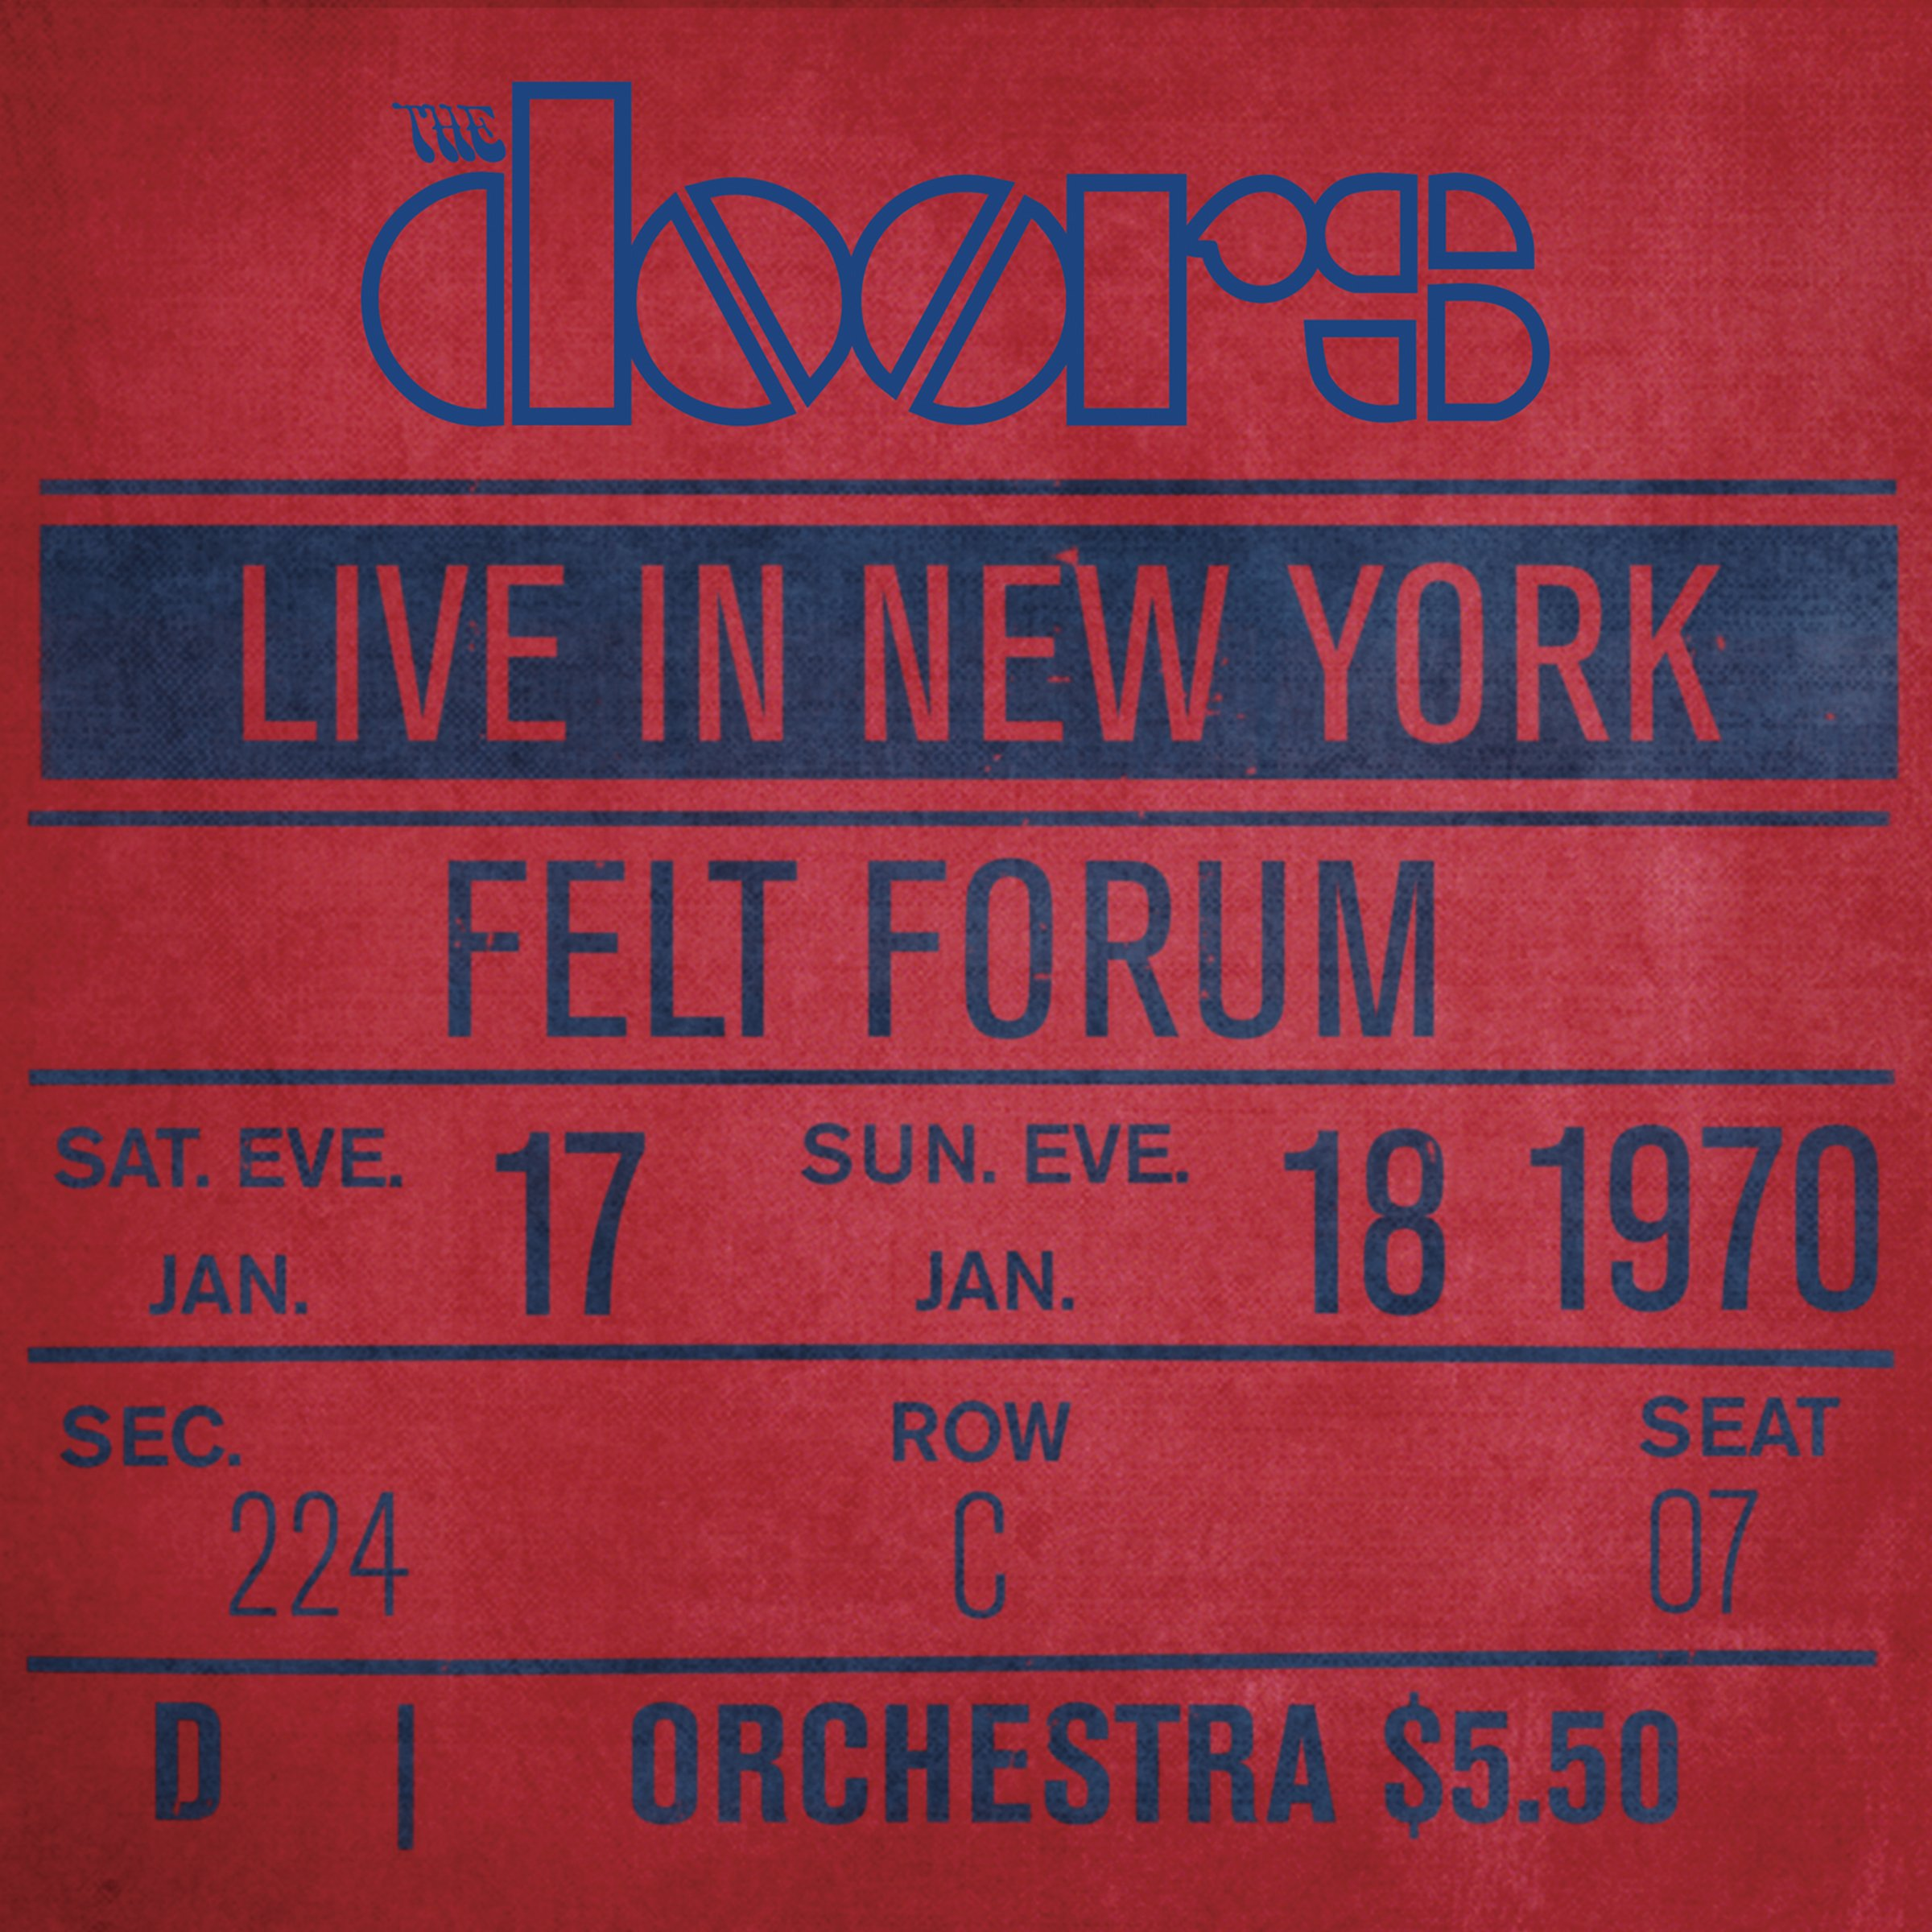 Live in New York, Felt Forum by Doors, The